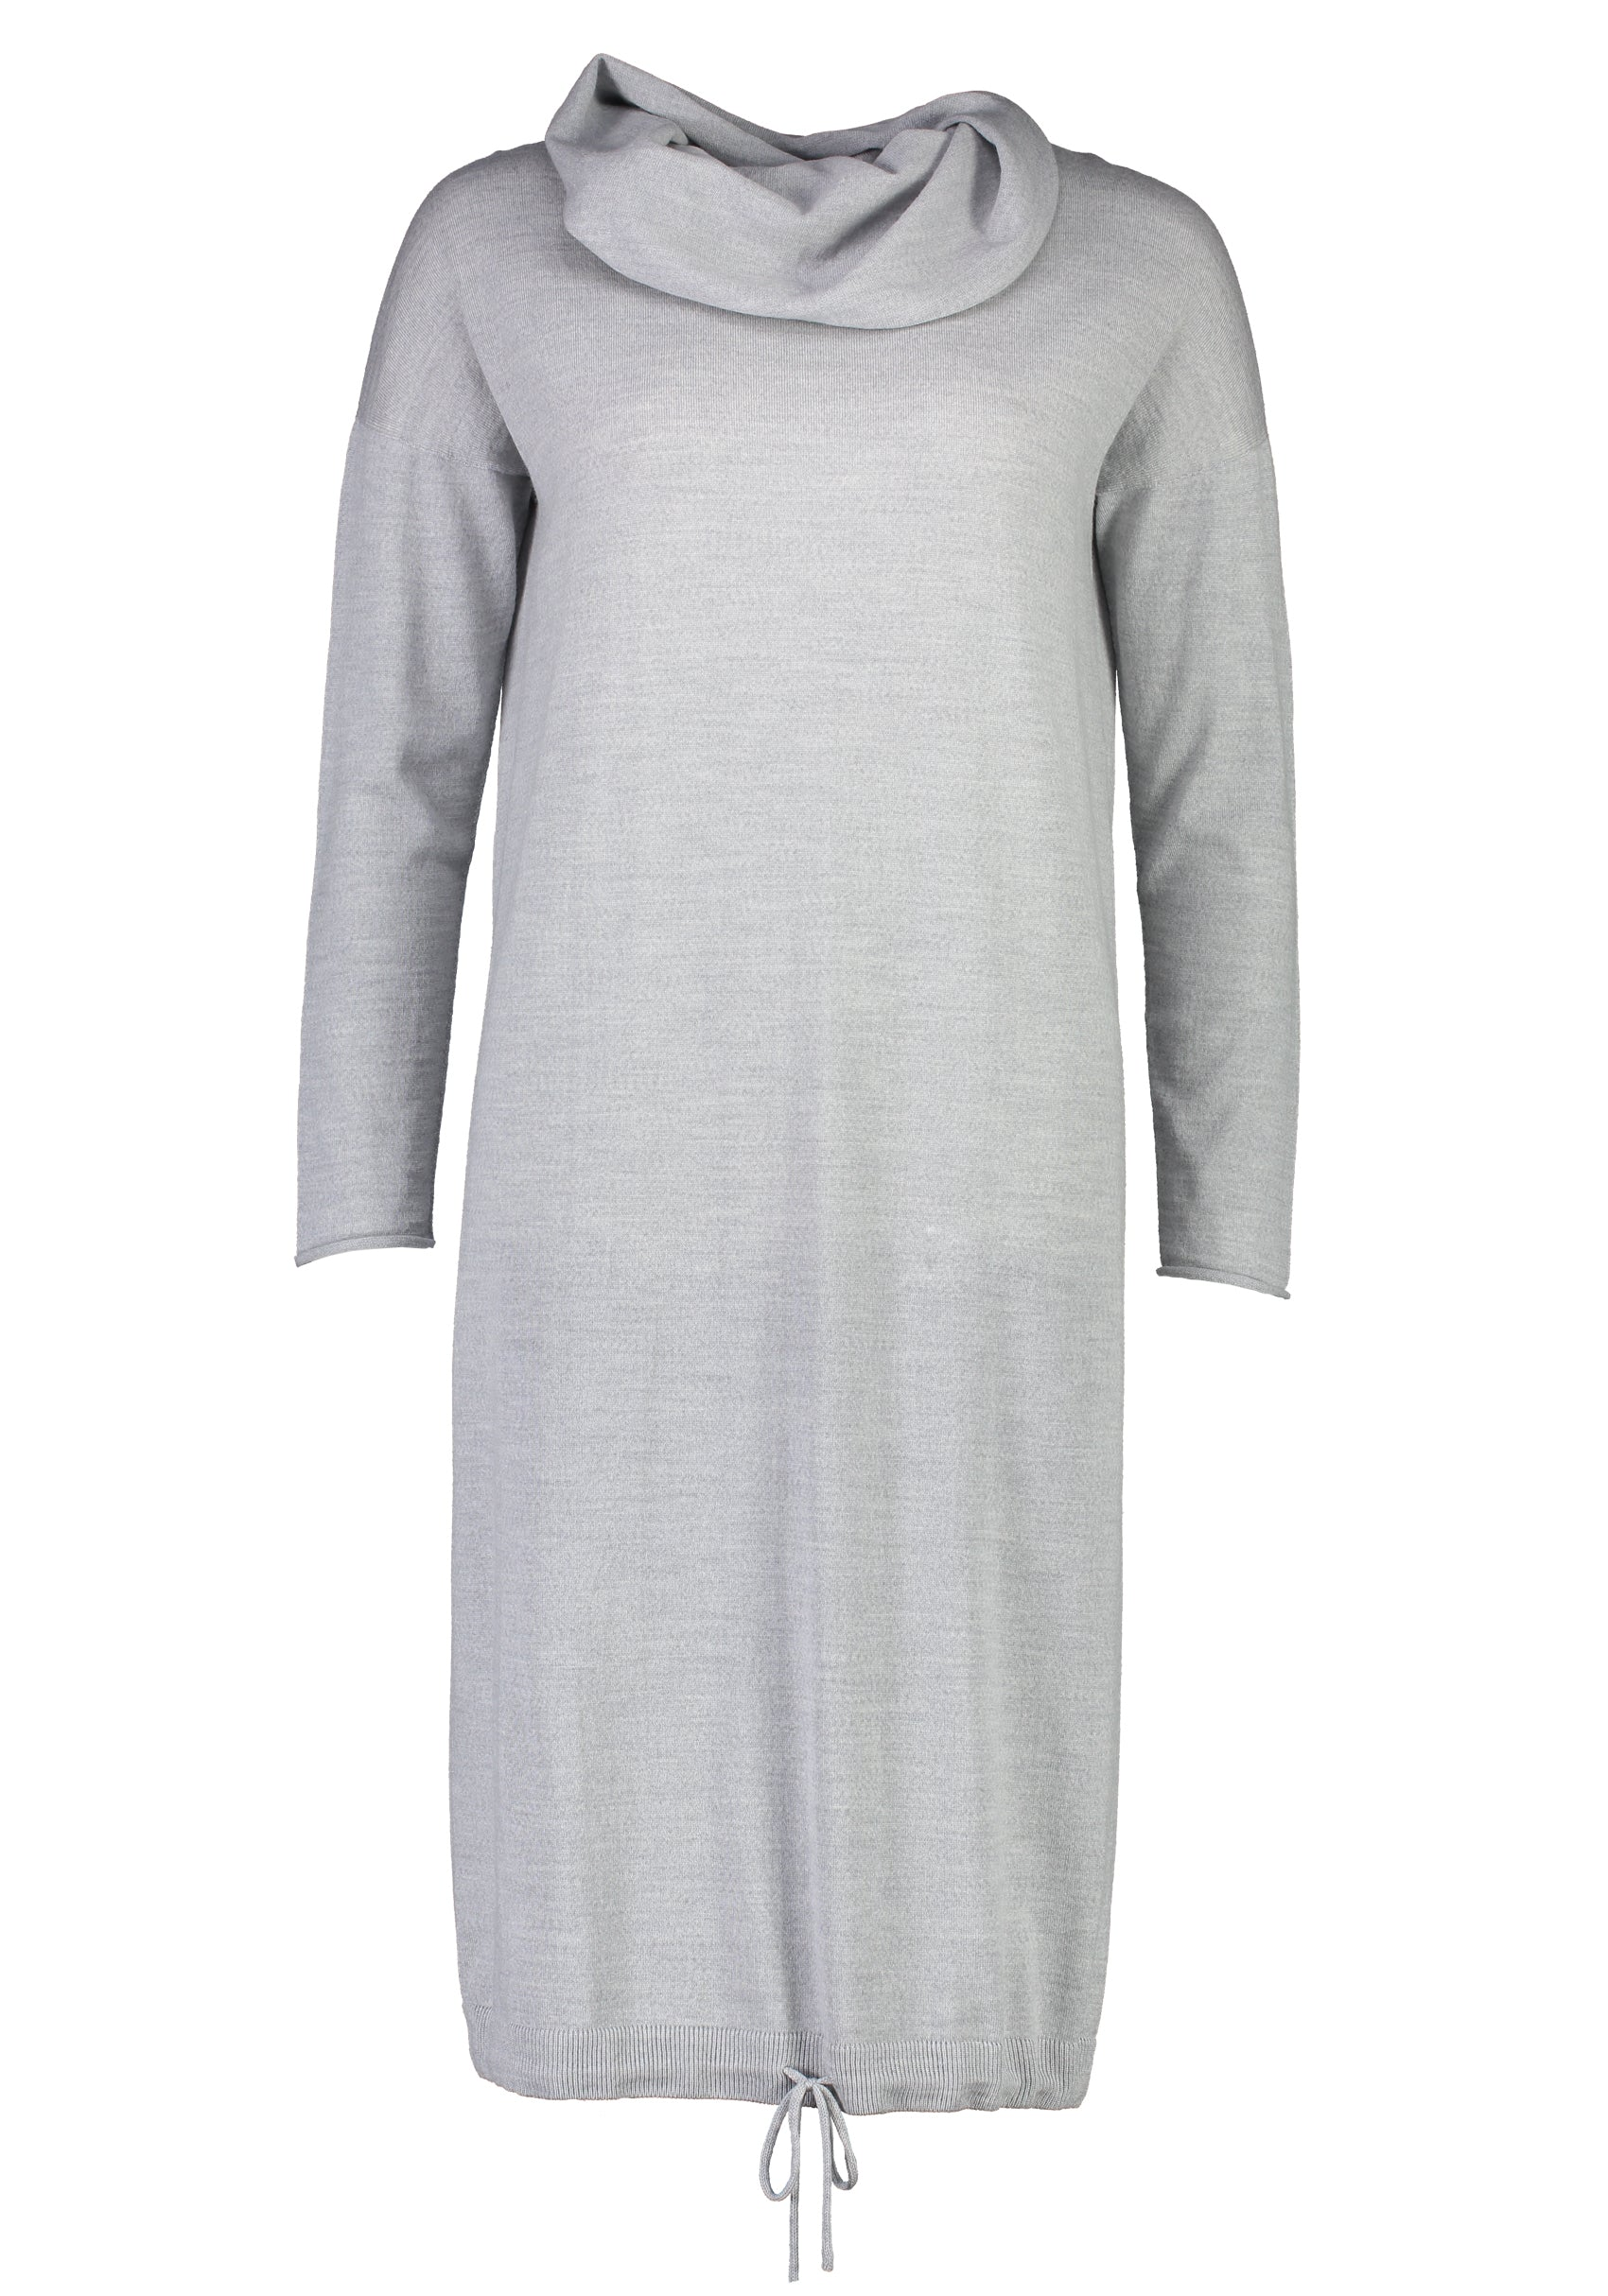 Funnel Neck Dress - Standard Issue